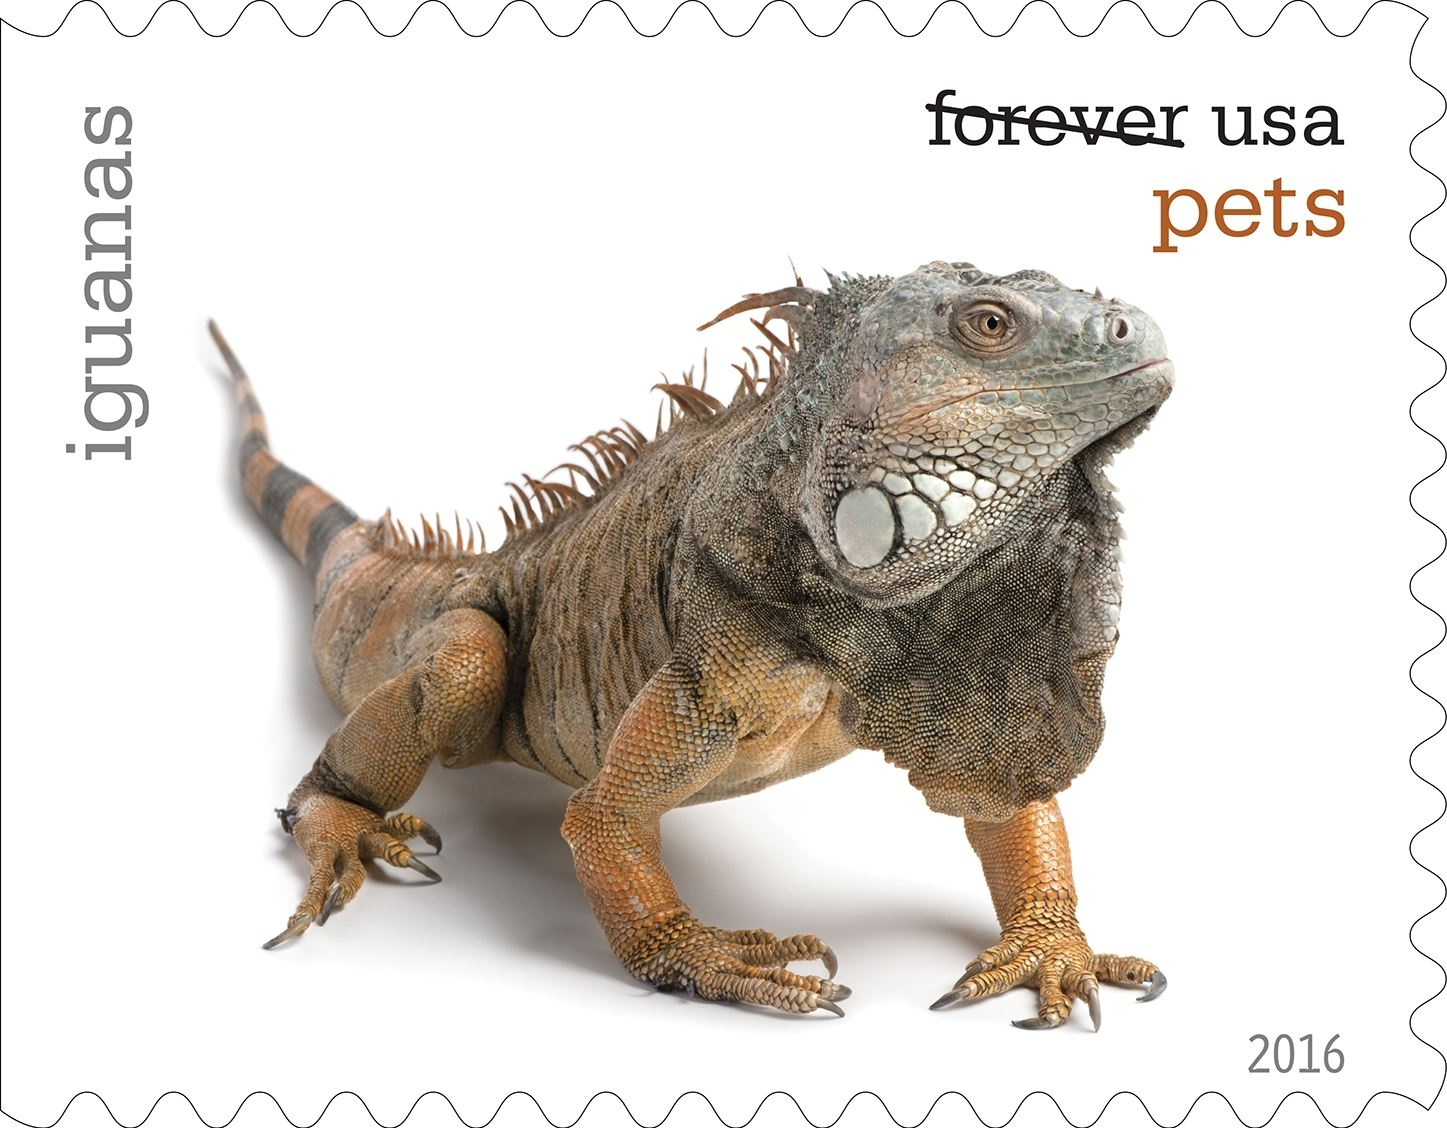 12-0_USPS16STA004m (1)-3 Iguanas will be among the pets celebrated in an upcoming set of Forever stamps issued by the U.S. Postal Service.